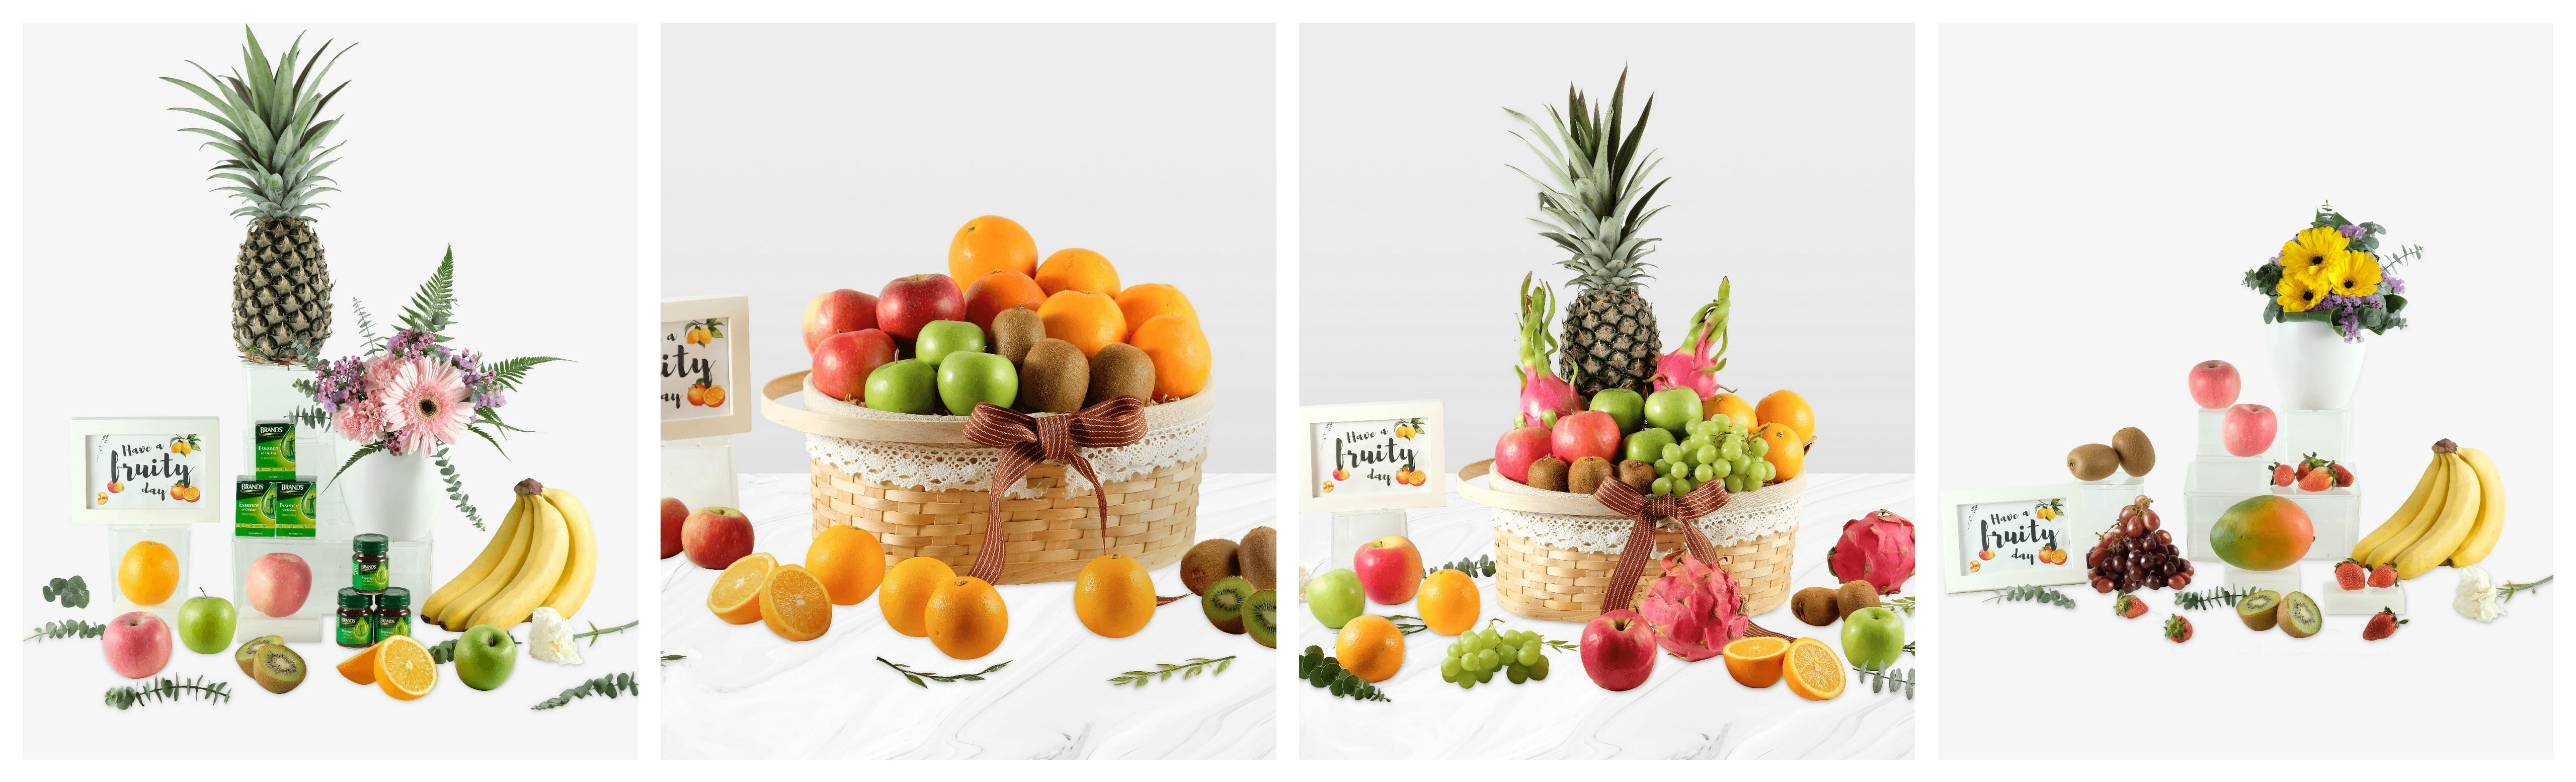 A Better Florist's Fruit Baskets